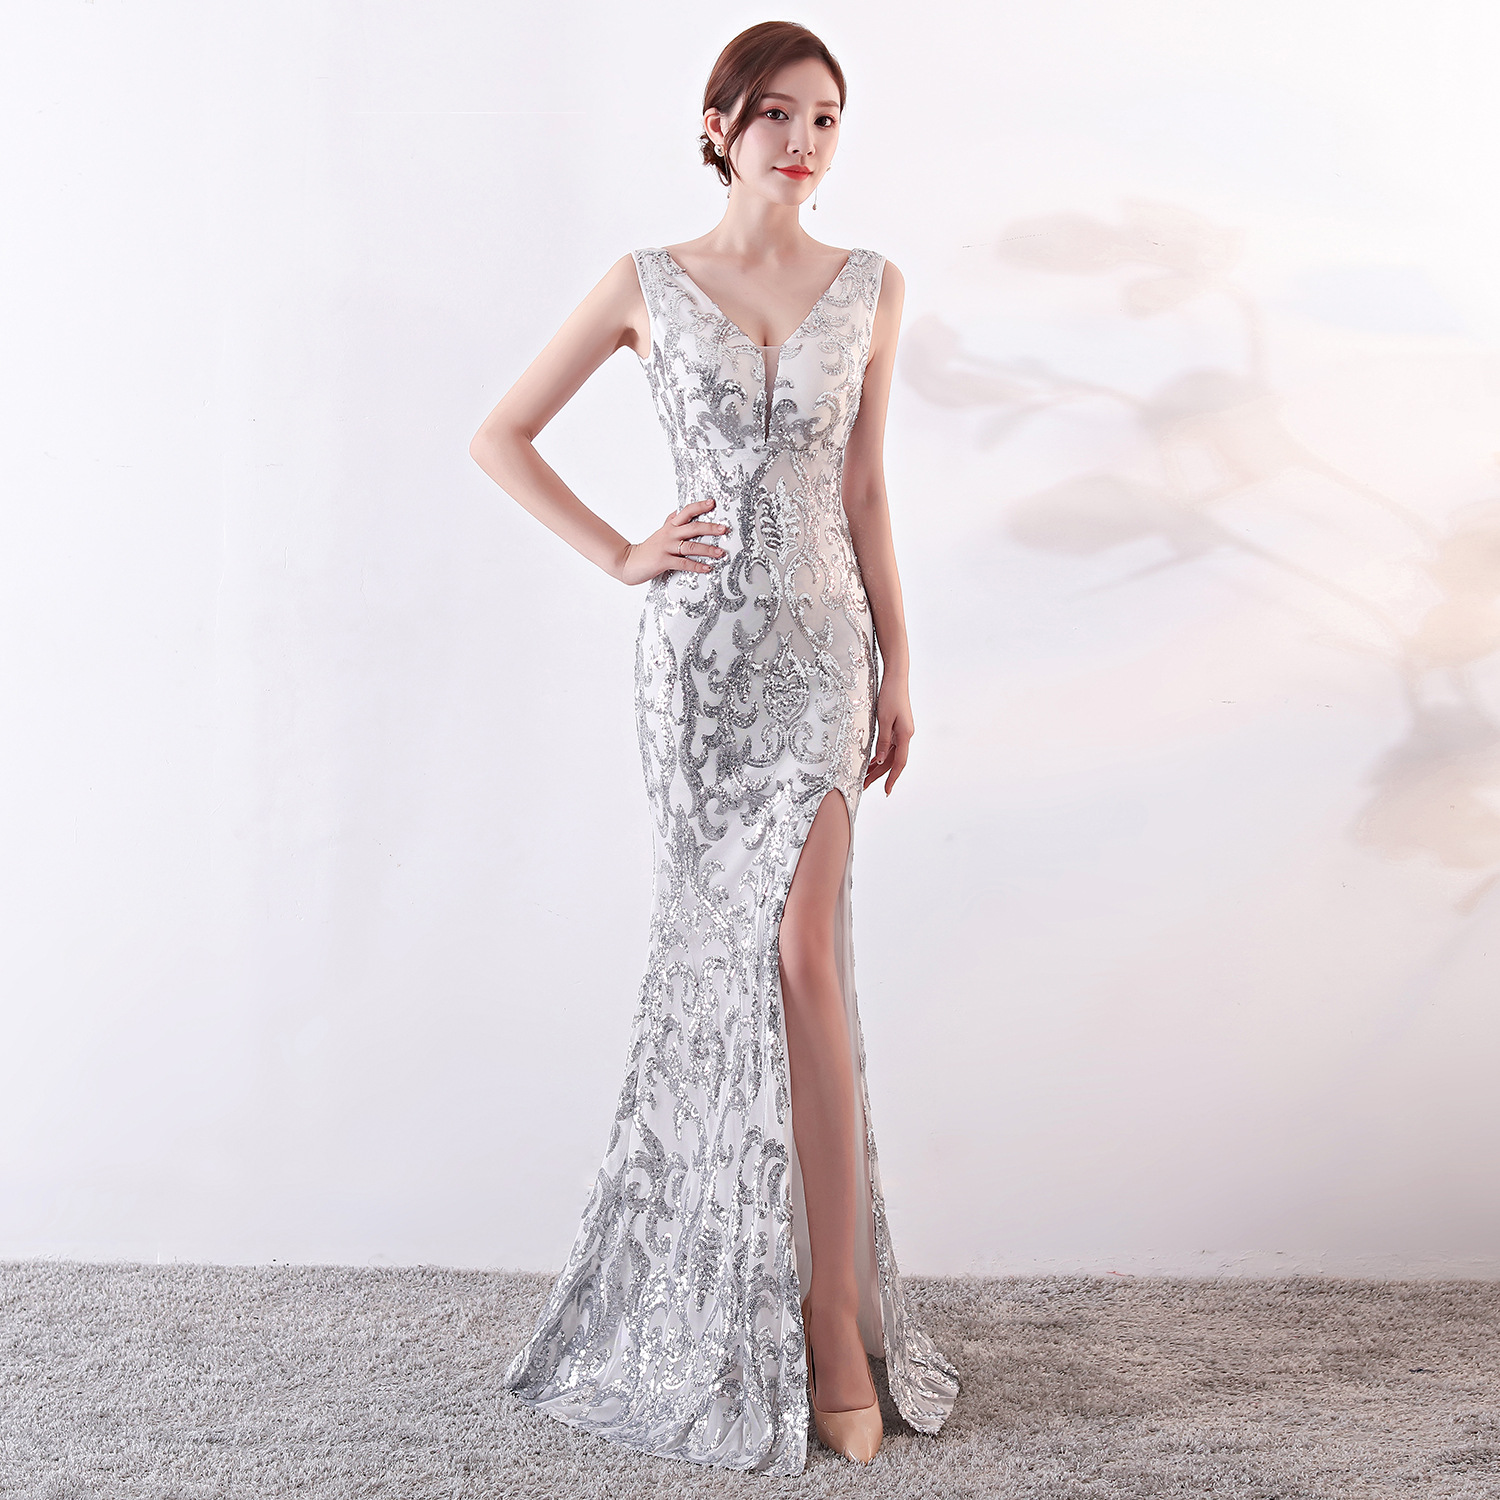 1202, Net Yarn Embroidery Light Film Is Type Of Cultivate One's Morality Fishtail Gown Fashion Female Party Host Party Dress